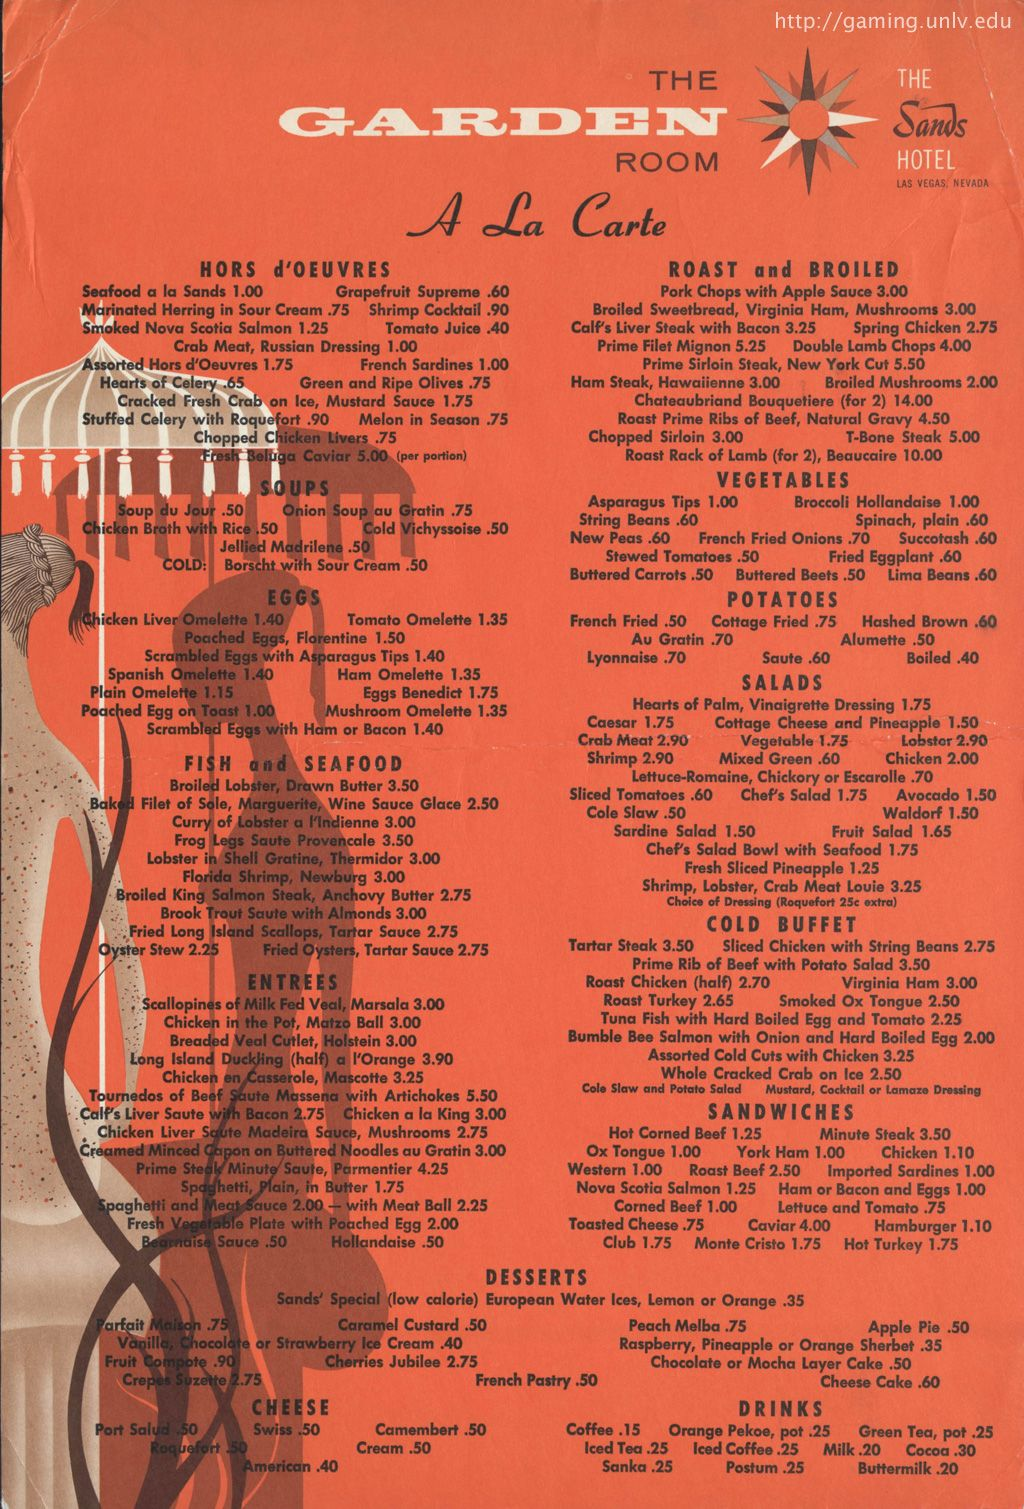 The Garden Room Menu From The Old Sands Hotel In Las Vegas  Print Inspiration Luxor In Room Dining Menu Design Ideas